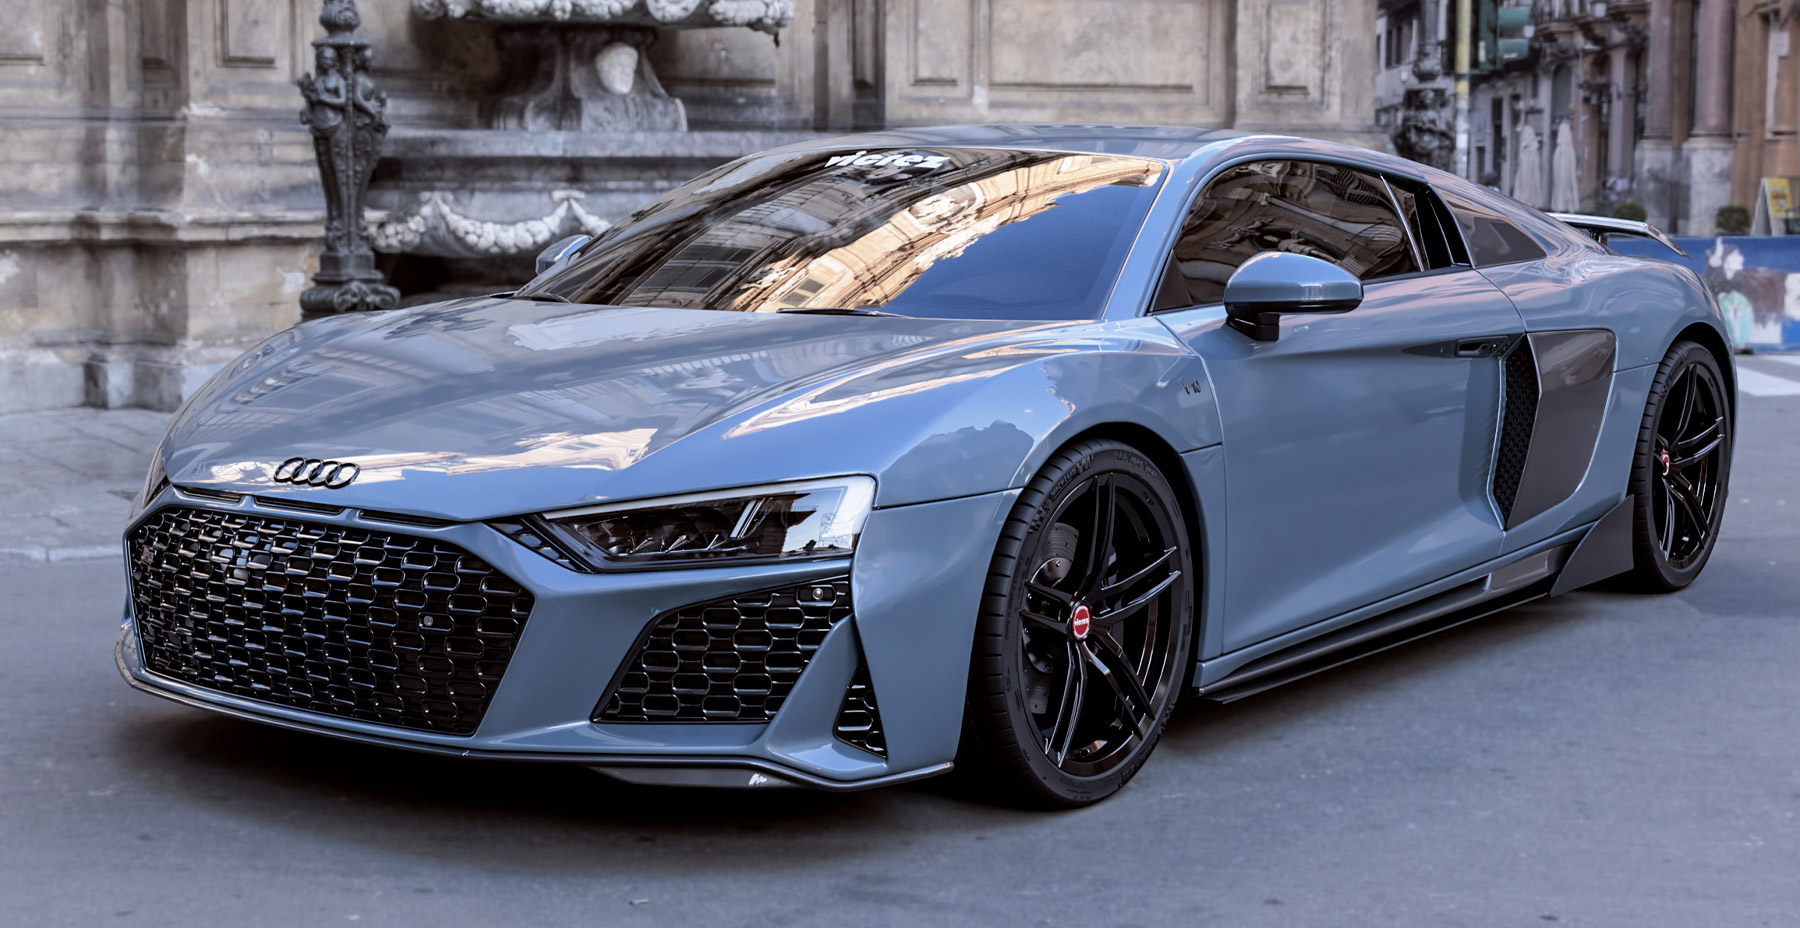 2020 Audi R8 Shadow Gray  x Vicrez VAF Forged Wheels (Finished in Gloss Black)